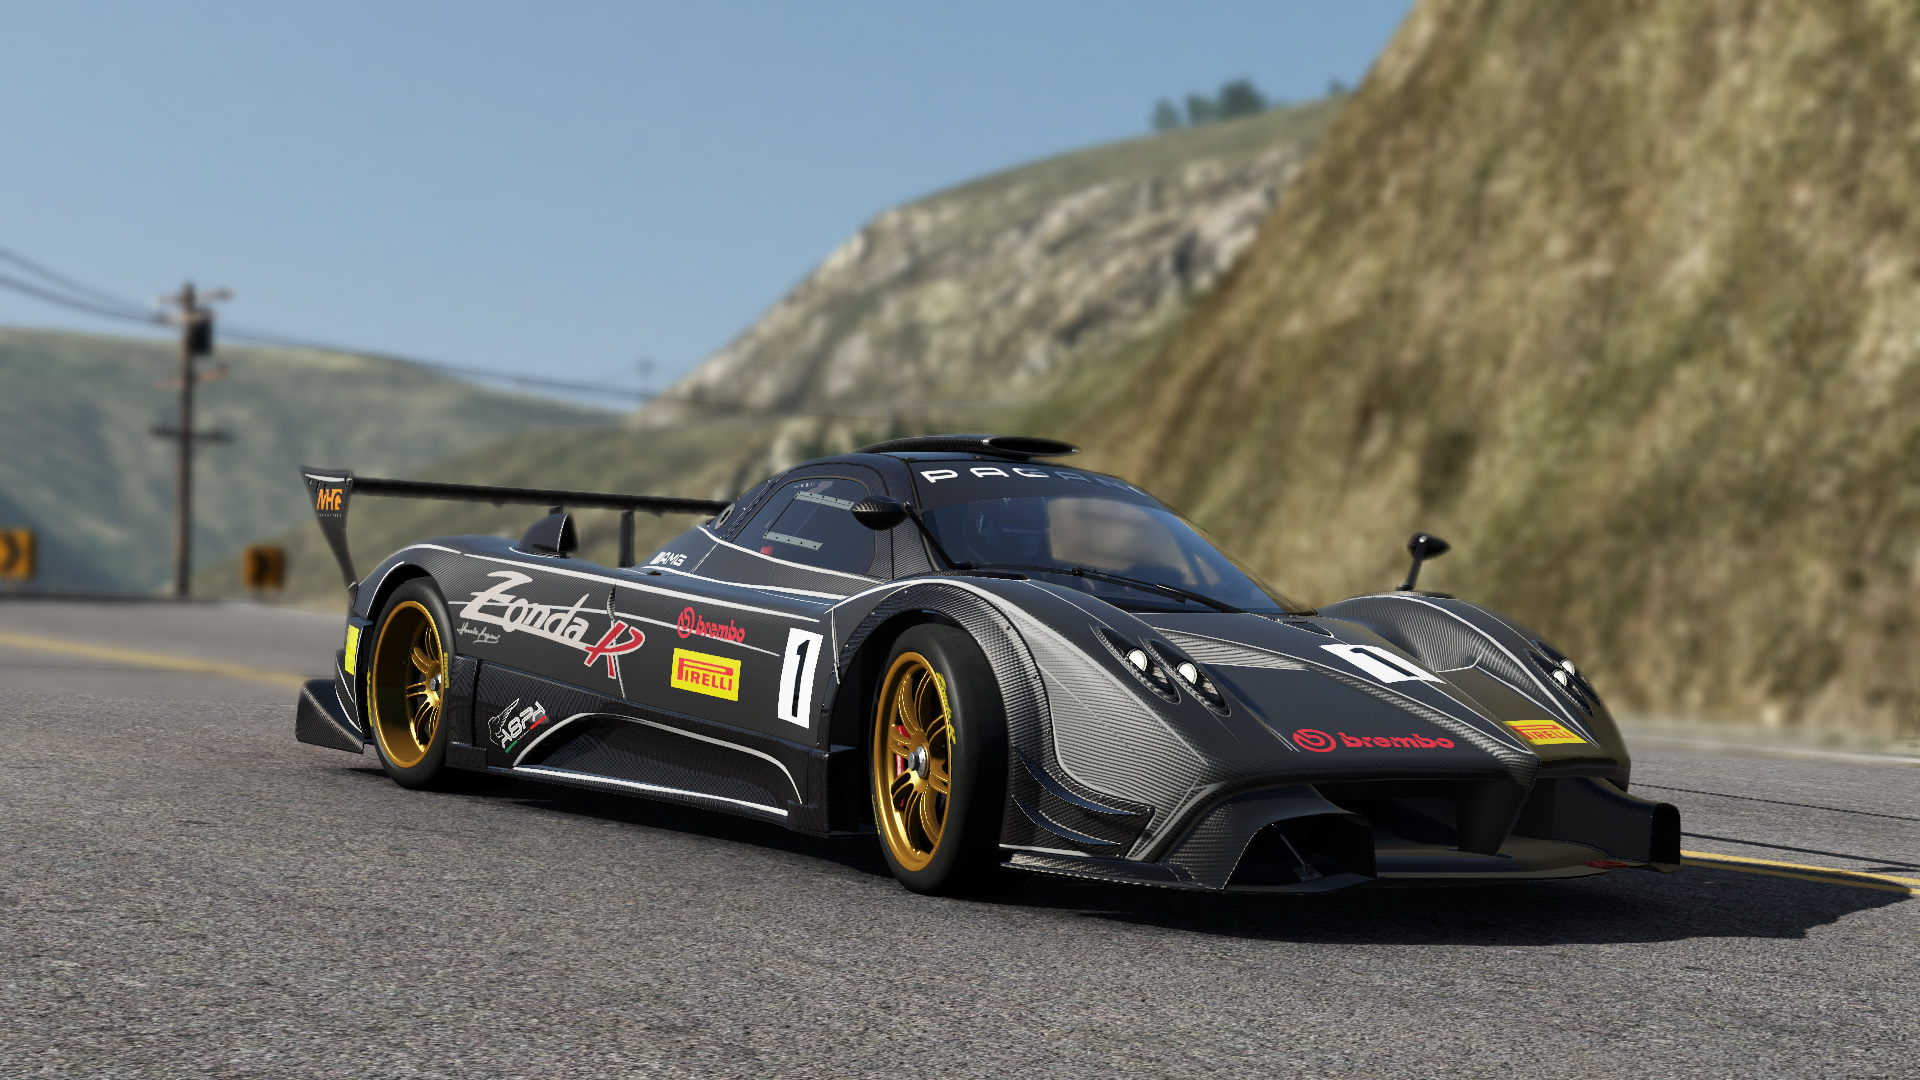 three paganis coming to project cars sim racing news. Black Bedroom Furniture Sets. Home Design Ideas